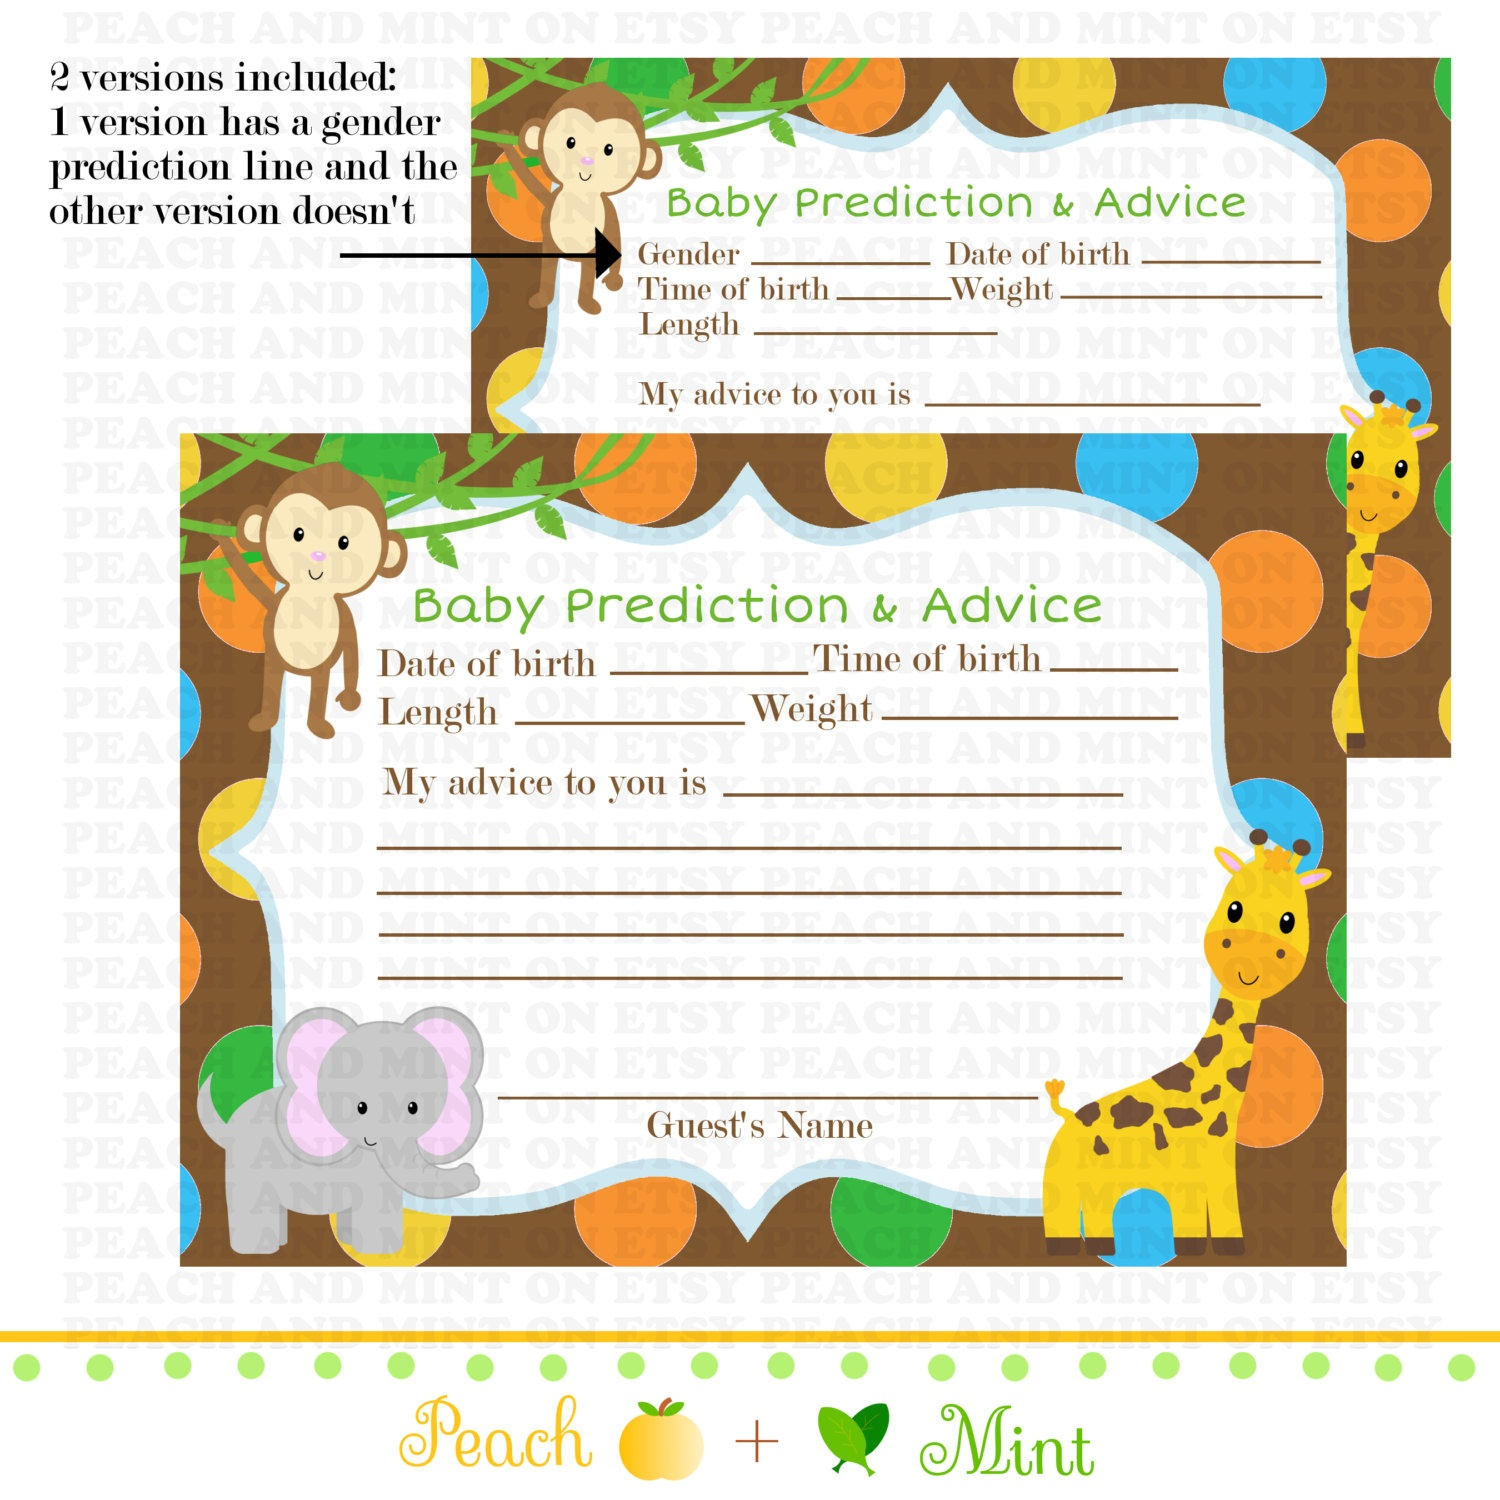 Photo : Lion King Baby Shower Image - Free Printable Lion King Baby Shower Invitations